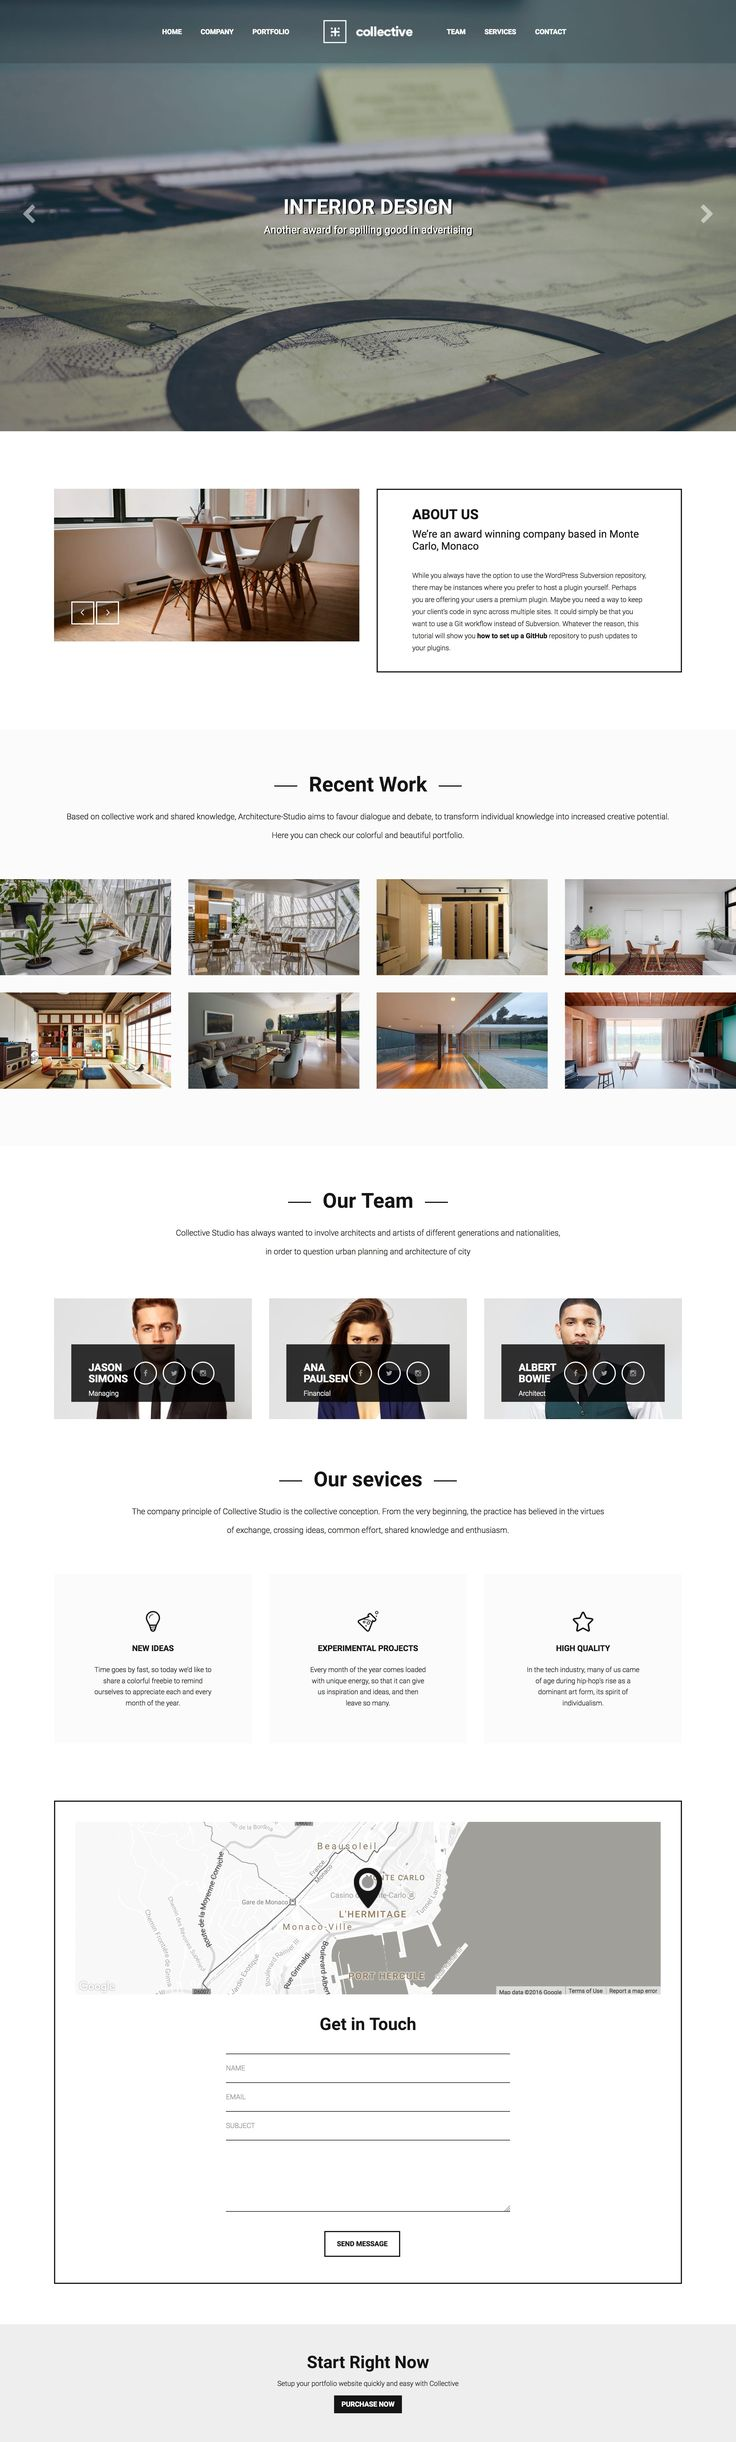 'Collective' is a multi-page WordPress theme with a dedicated One Page portfolio layout option. Features include fixed header navigation (that smooth scrolls to relevant sections), intro slideshow, company overview (with bonus image slider), AJAX loading portfolio with a lovely big image project slider, team section, Google Maps integration and a contact form. The WordPress theme is of course fully responsive and I especially like how how the team section adapts to mobile.